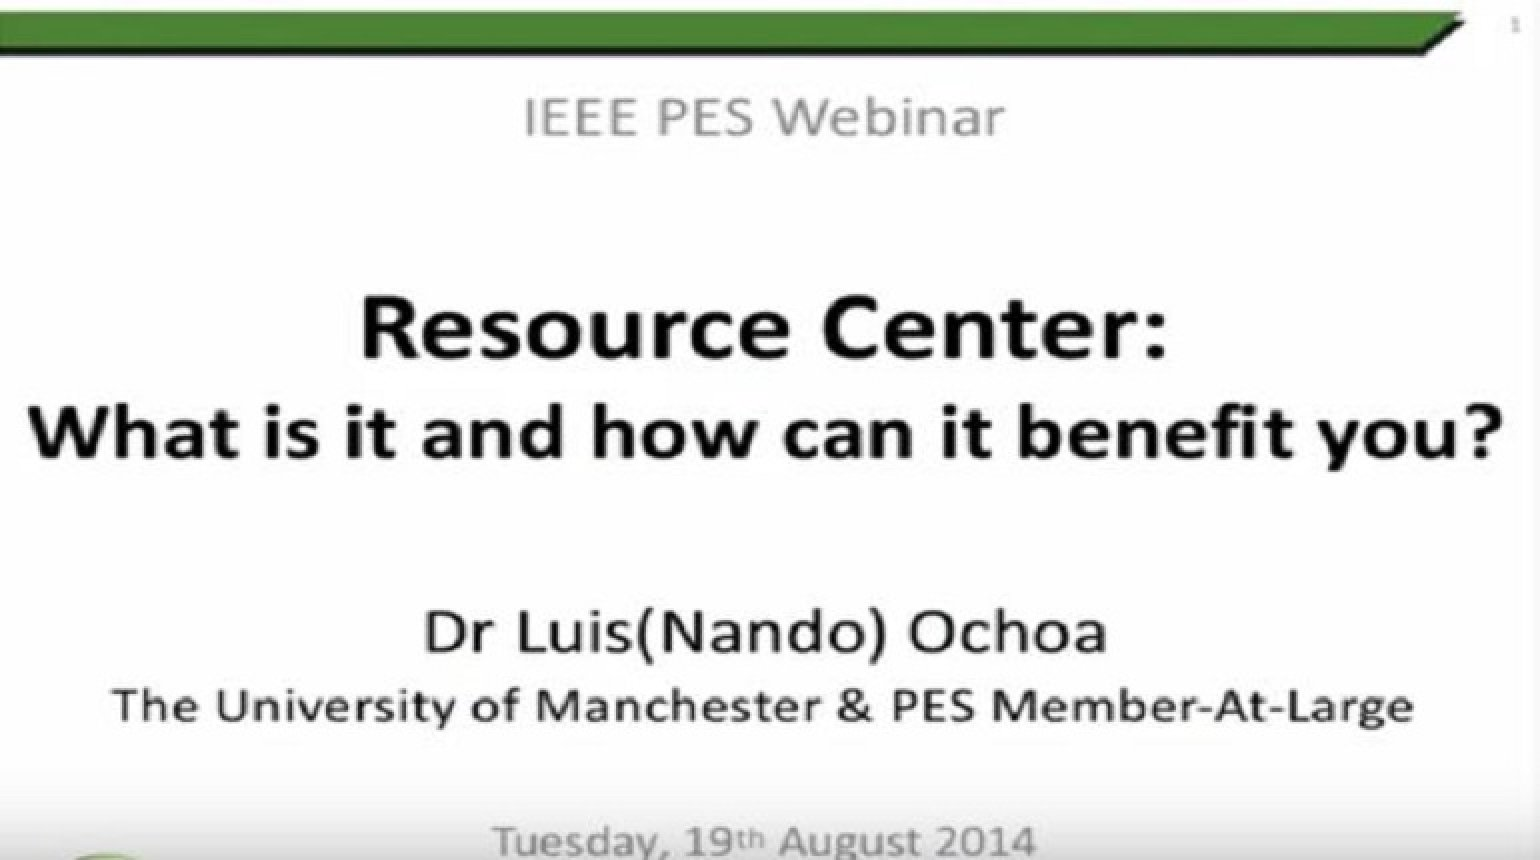 IEEE PES Resource Center